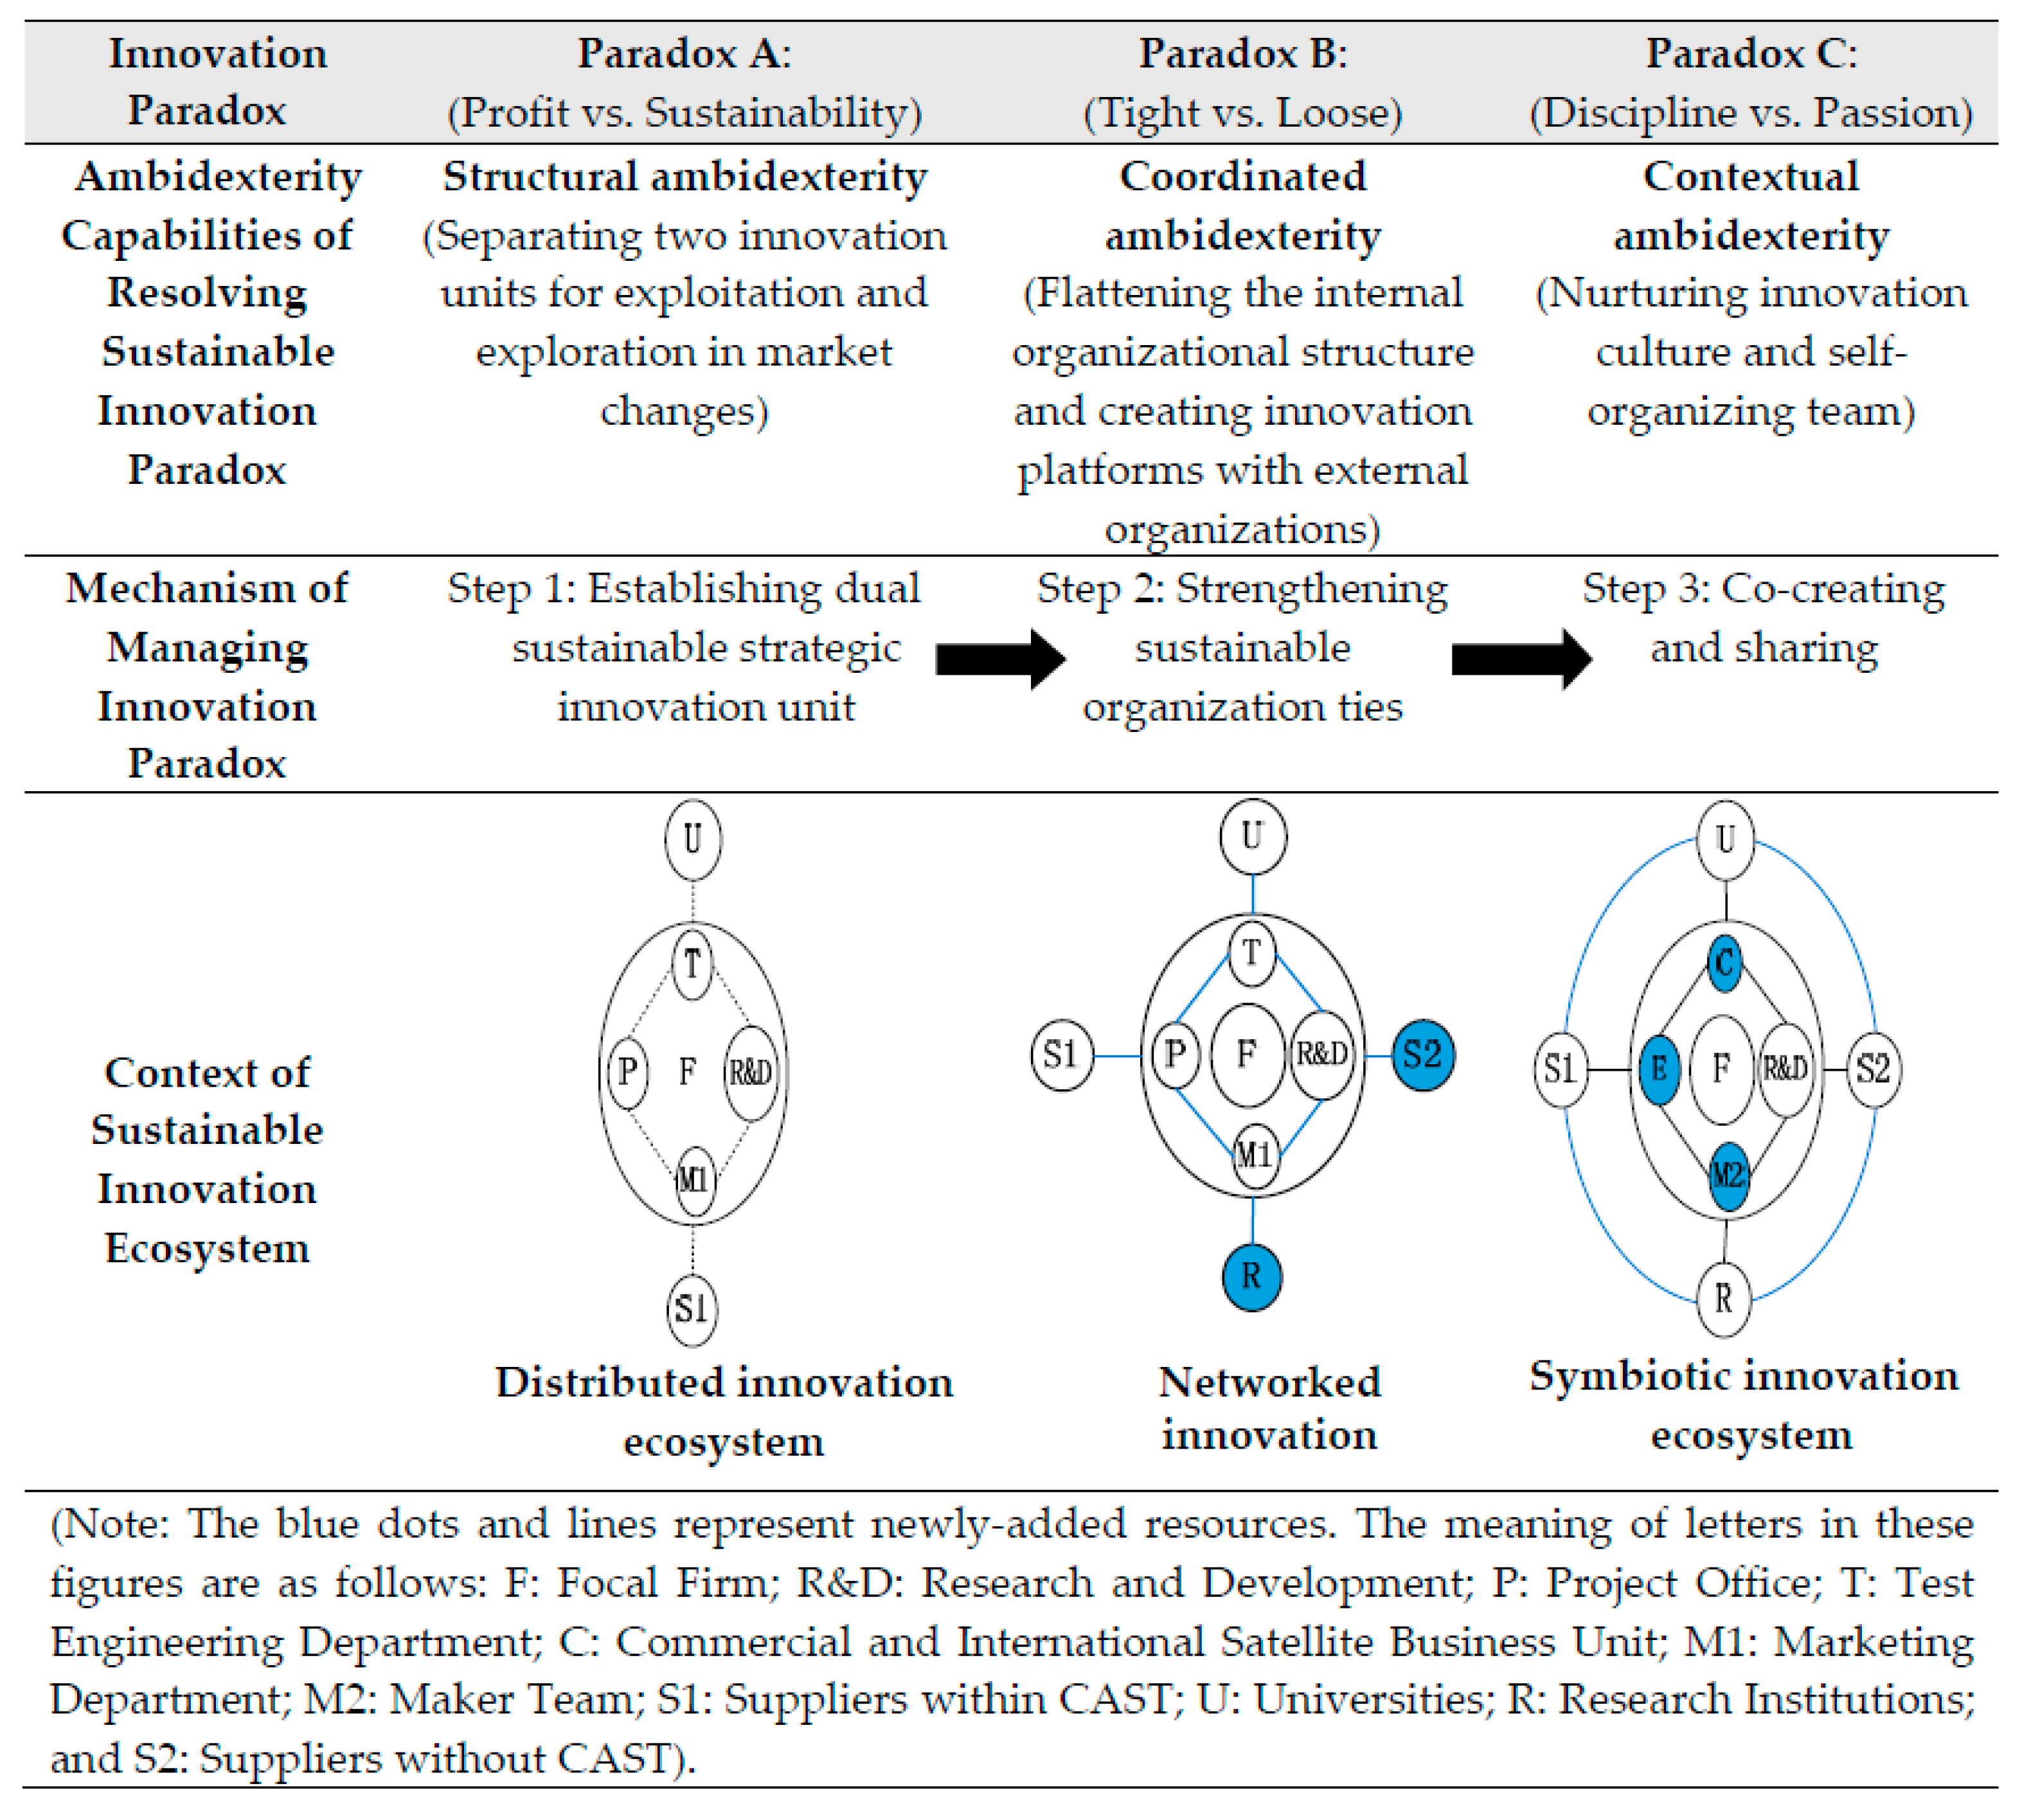 Sustainability Free Full Text Managing Innovation Paradox In The Sustainable Innovation Ecosystem A Case Study Of Ambidextrous Capability In A Focal Firm Html